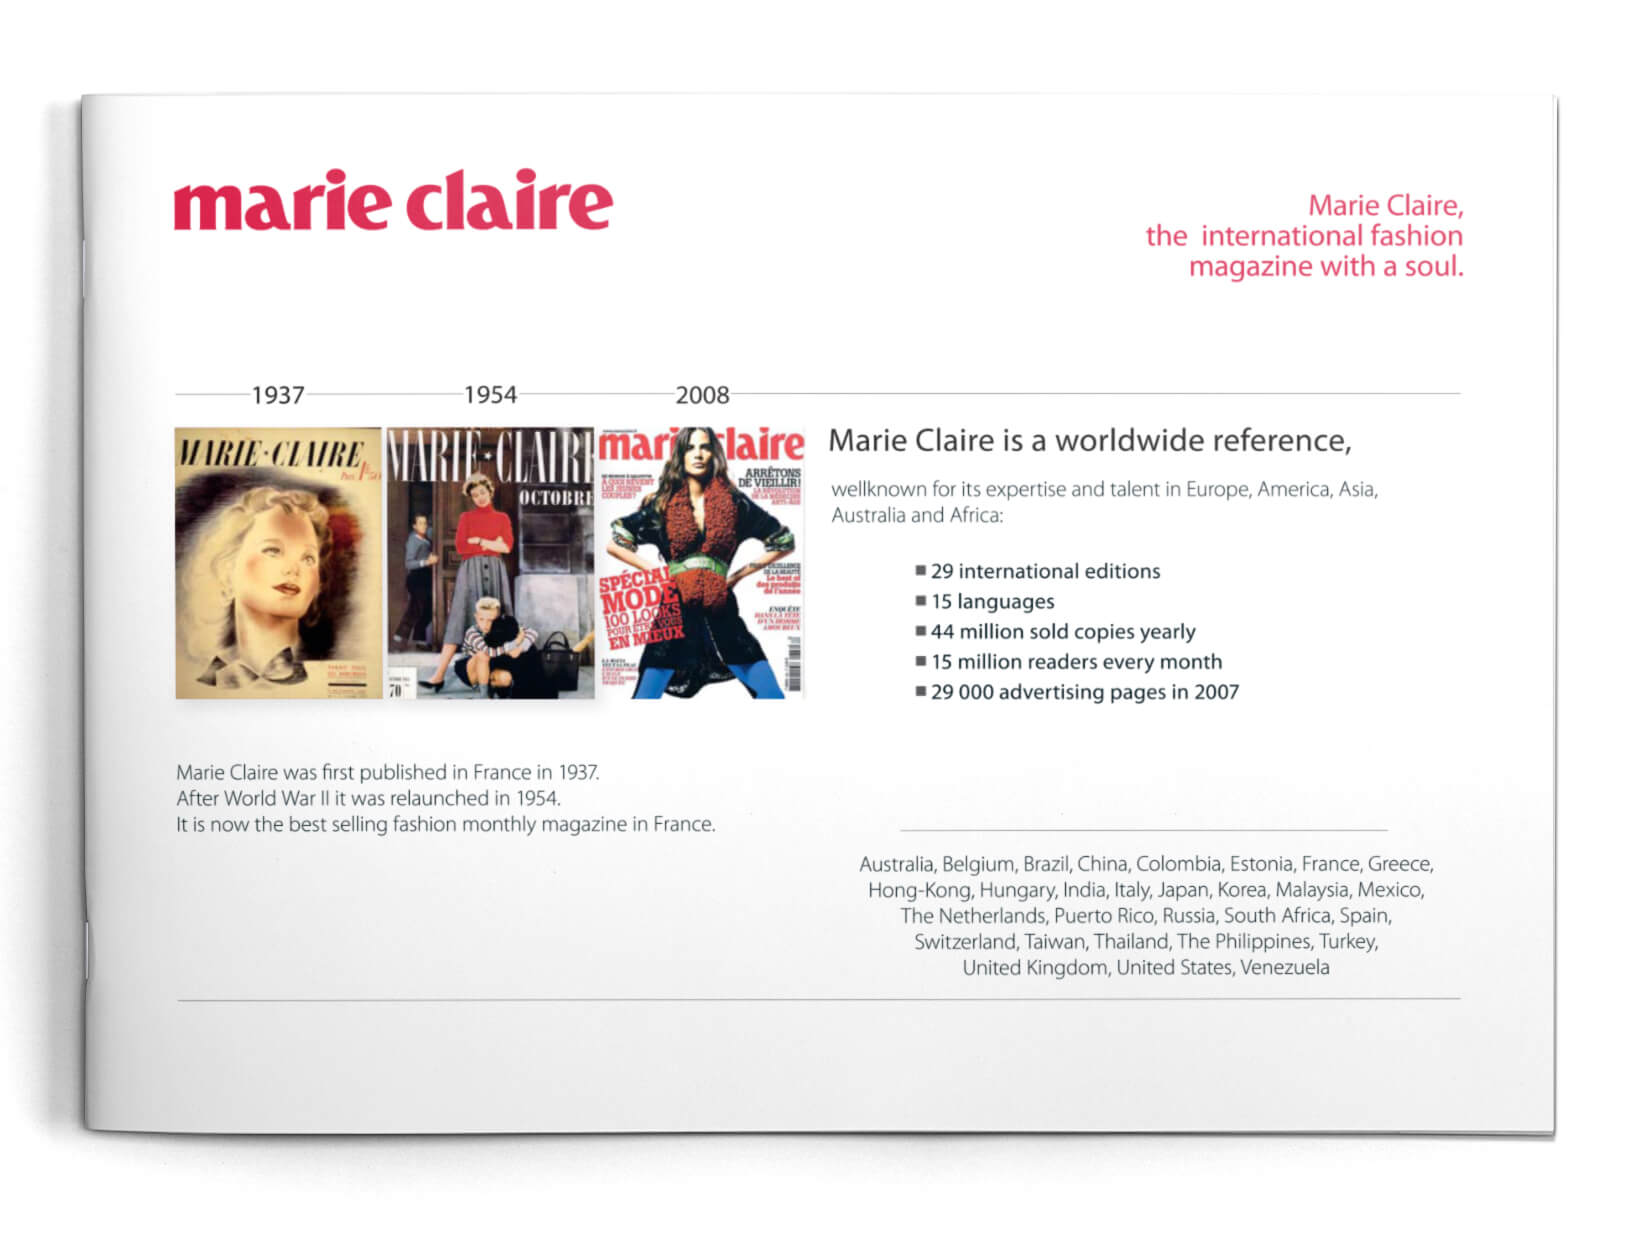 mediakit-marieclaire-cover-2